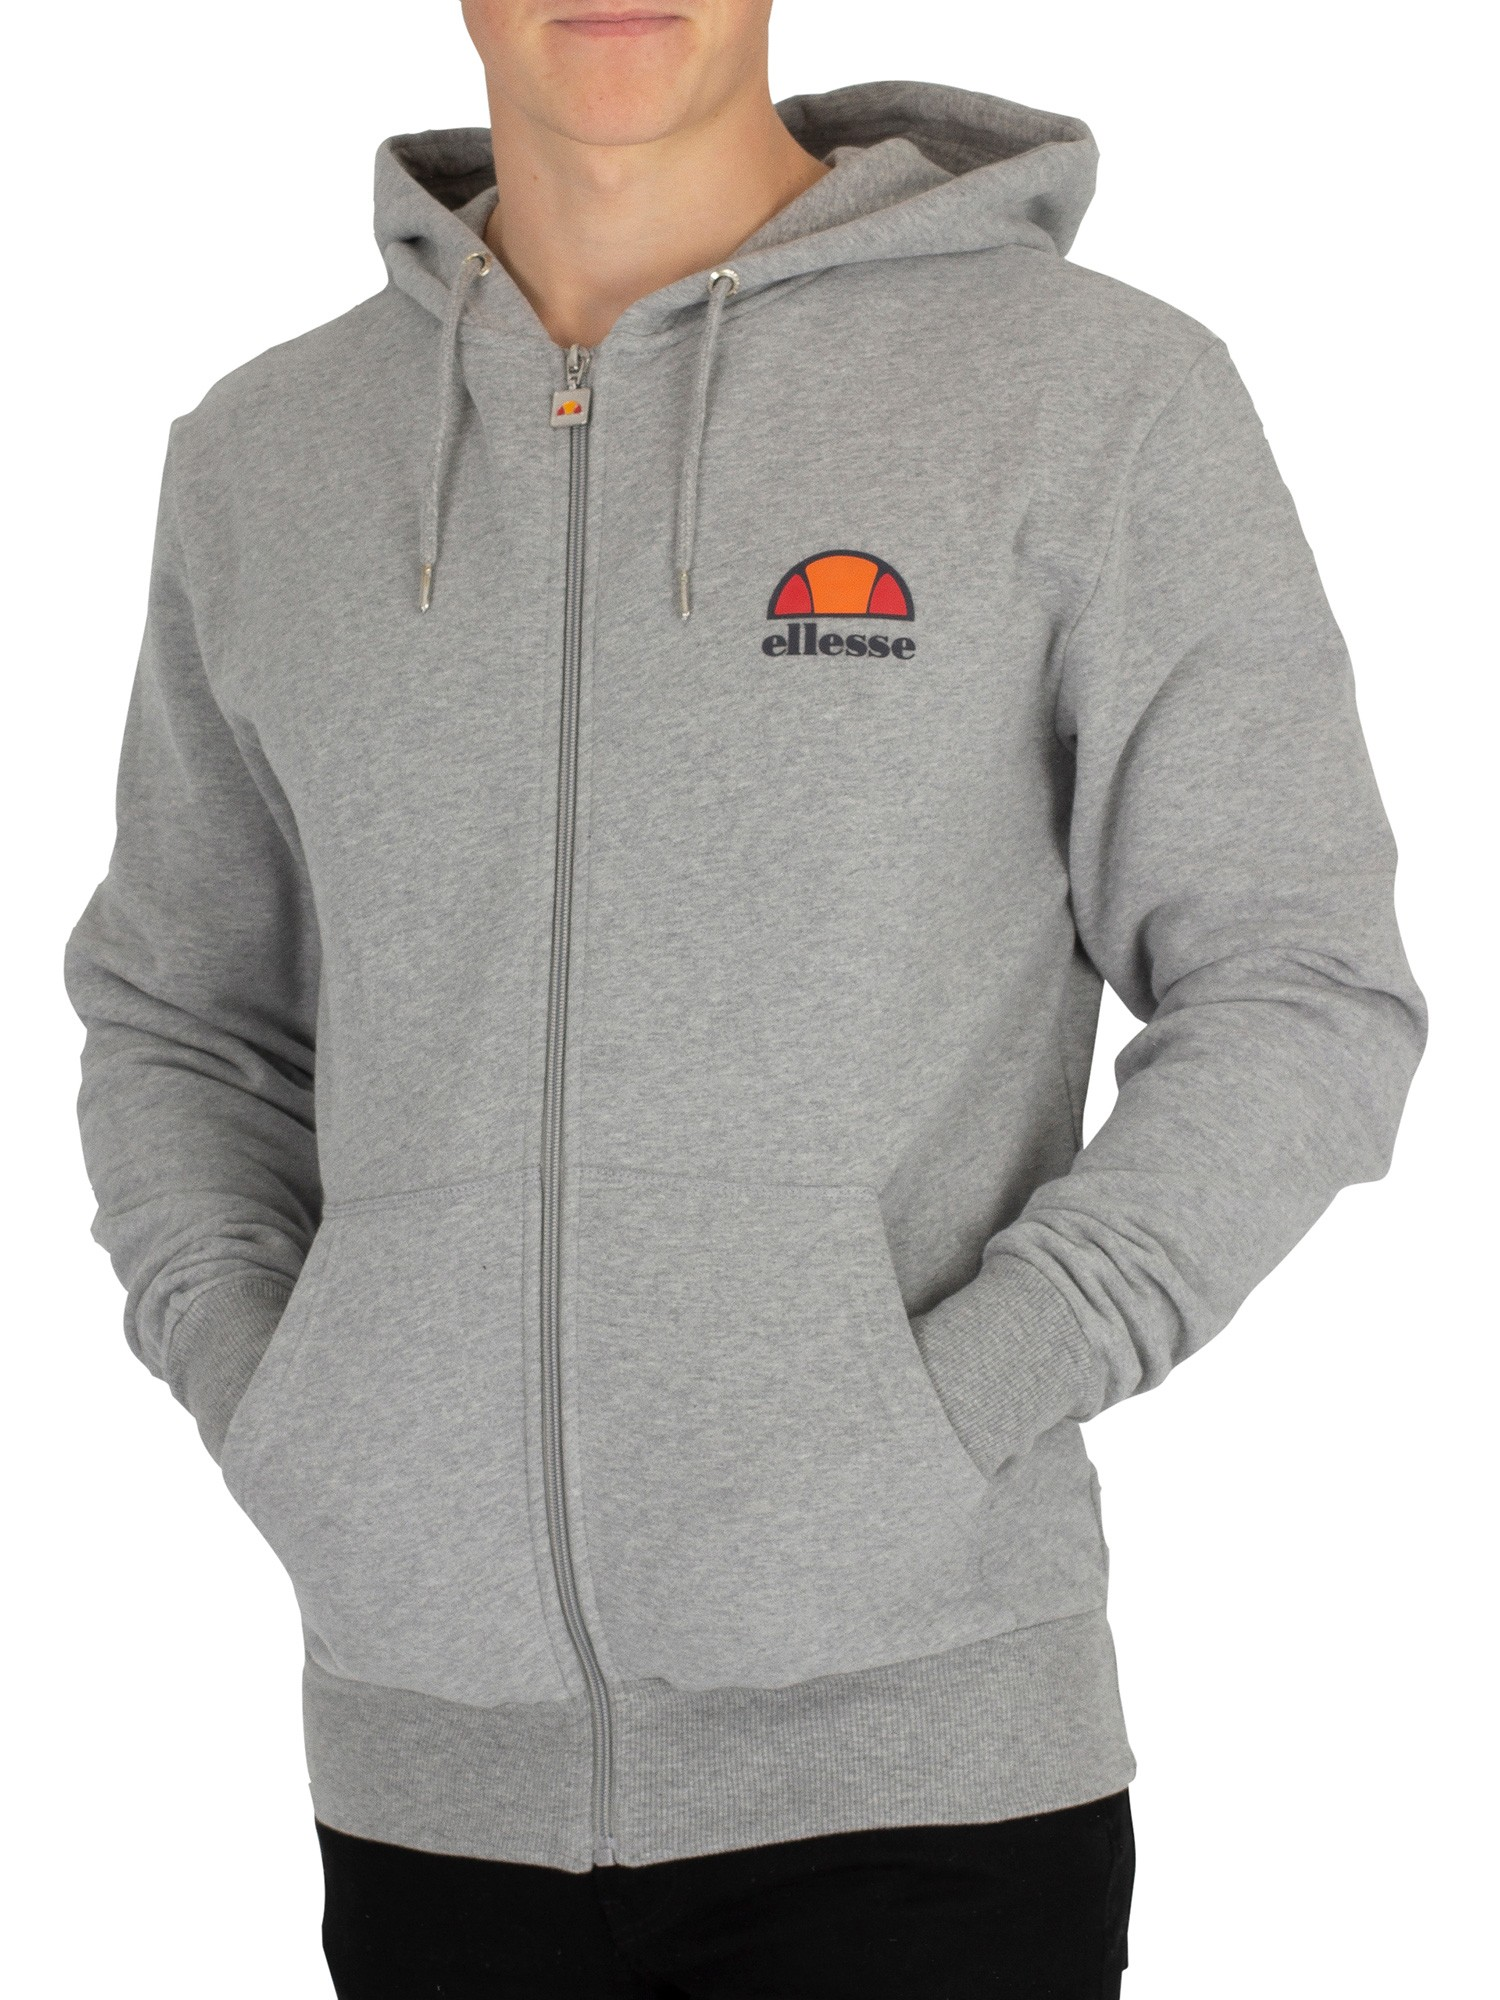 ellesse herren miletto zip hoodie logo grau ebay. Black Bedroom Furniture Sets. Home Design Ideas